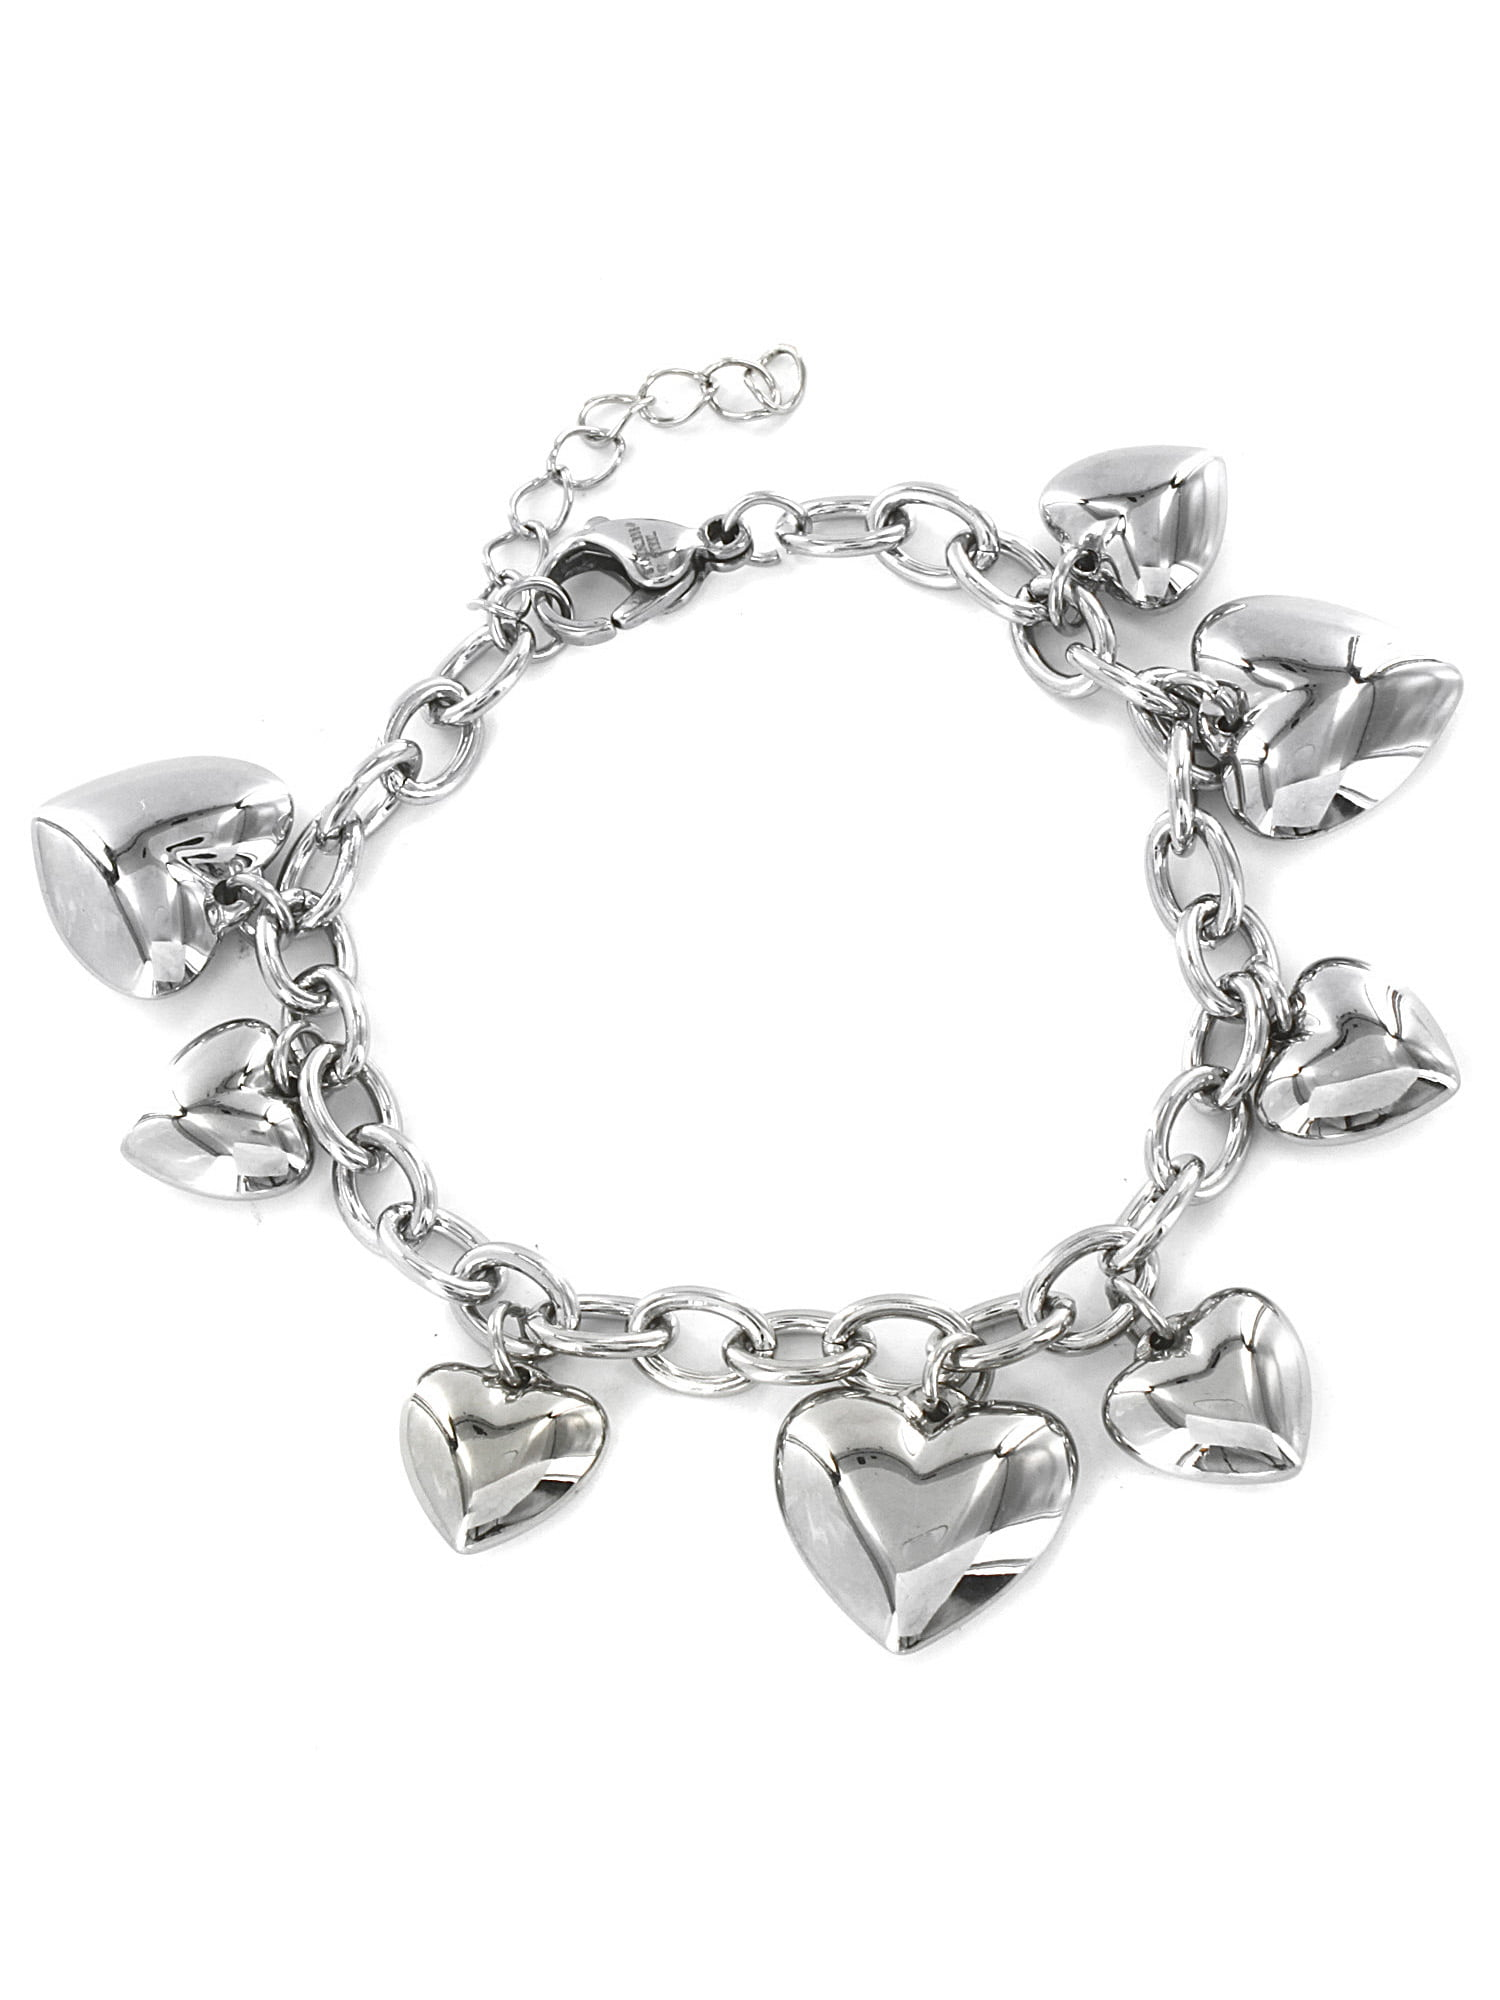 Jewels Obsession Heart Pendant Sterling Silver 22mm Heart with 7.5 Charm Bracelet